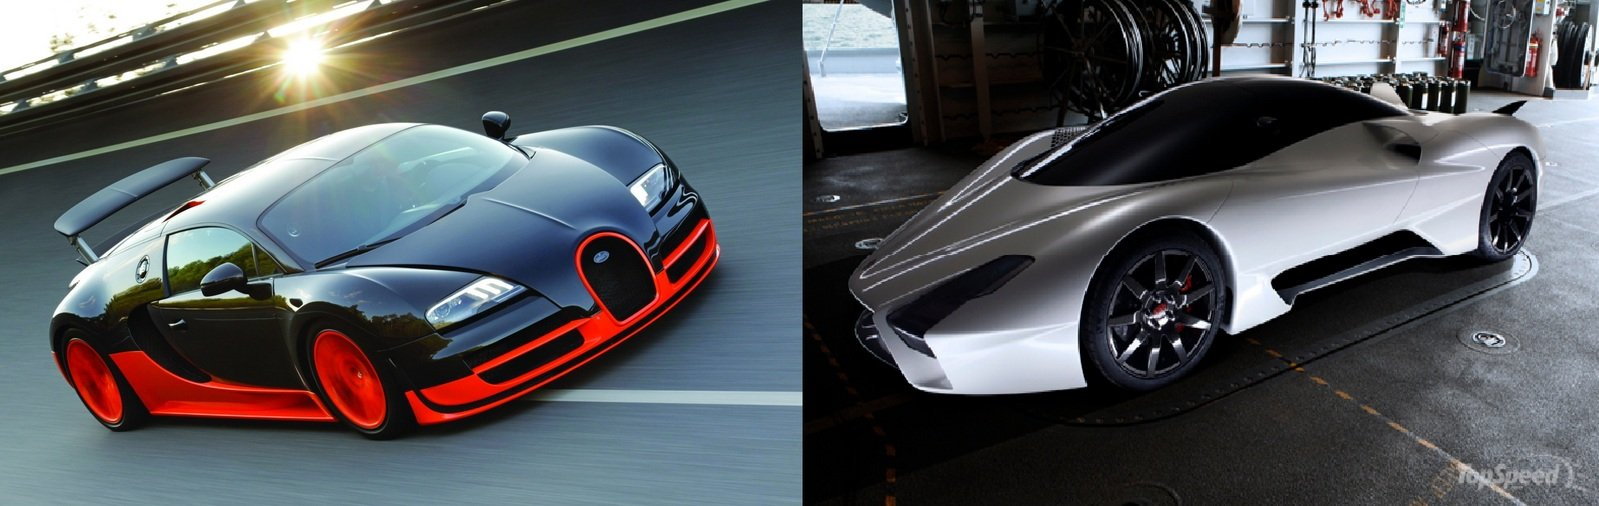 2011 bugatti veyron 16 4 super sport picture 412301 car review top speed. Black Bedroom Furniture Sets. Home Design Ideas